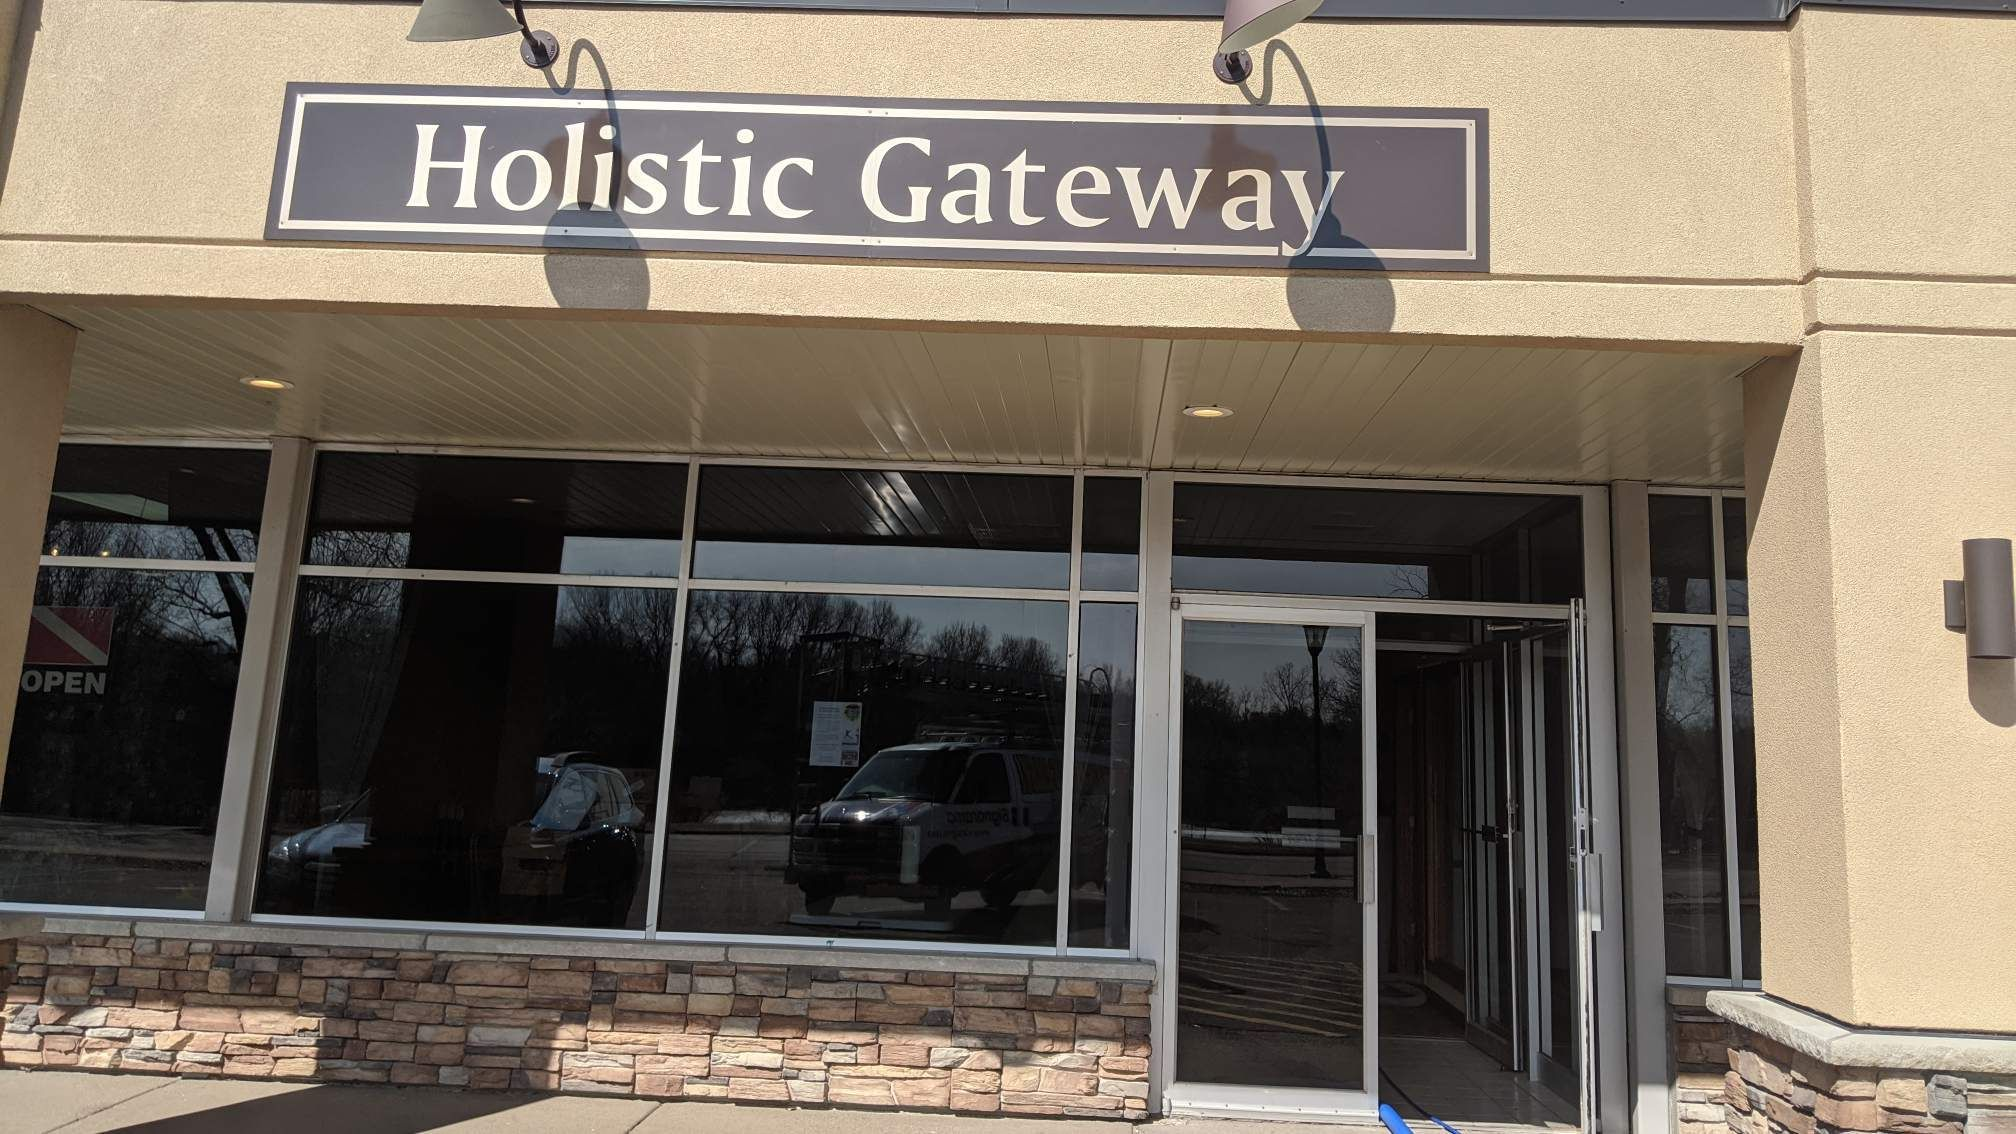 Holistic Gateway / Center for the Healing Arts